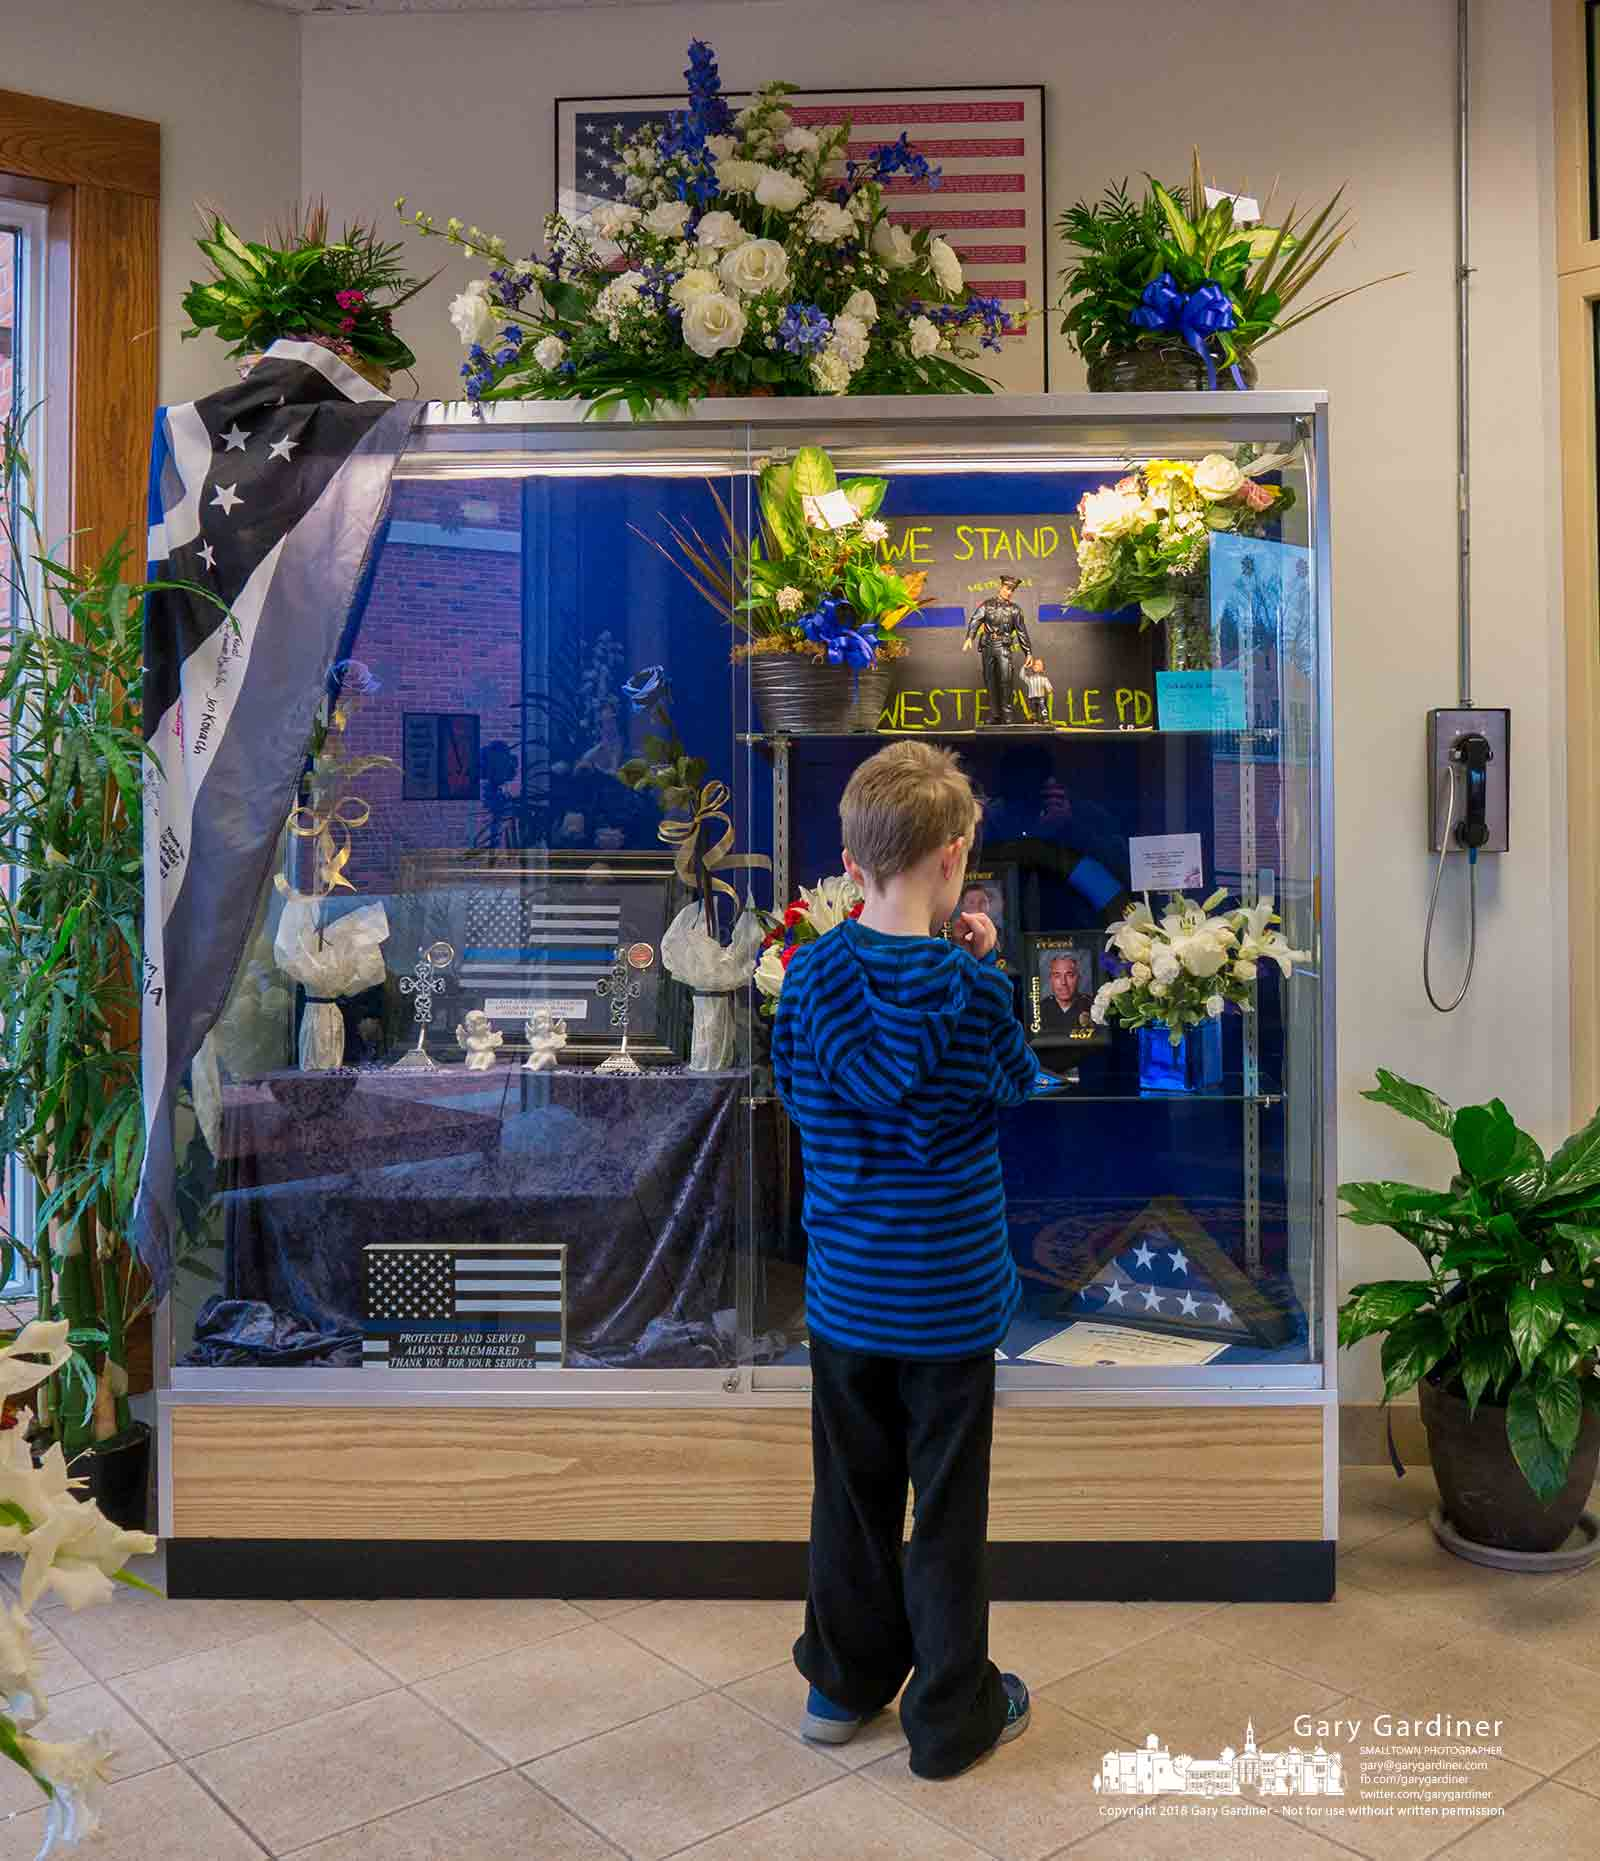 A young boy stands in front of the lobby memorial for Westerville Police Officers Eric Joering and Tony Morelli where two flags from the Capitol Police that flew over the US Capitol Building were added. My Final Photo for Feb. 21, 2018.